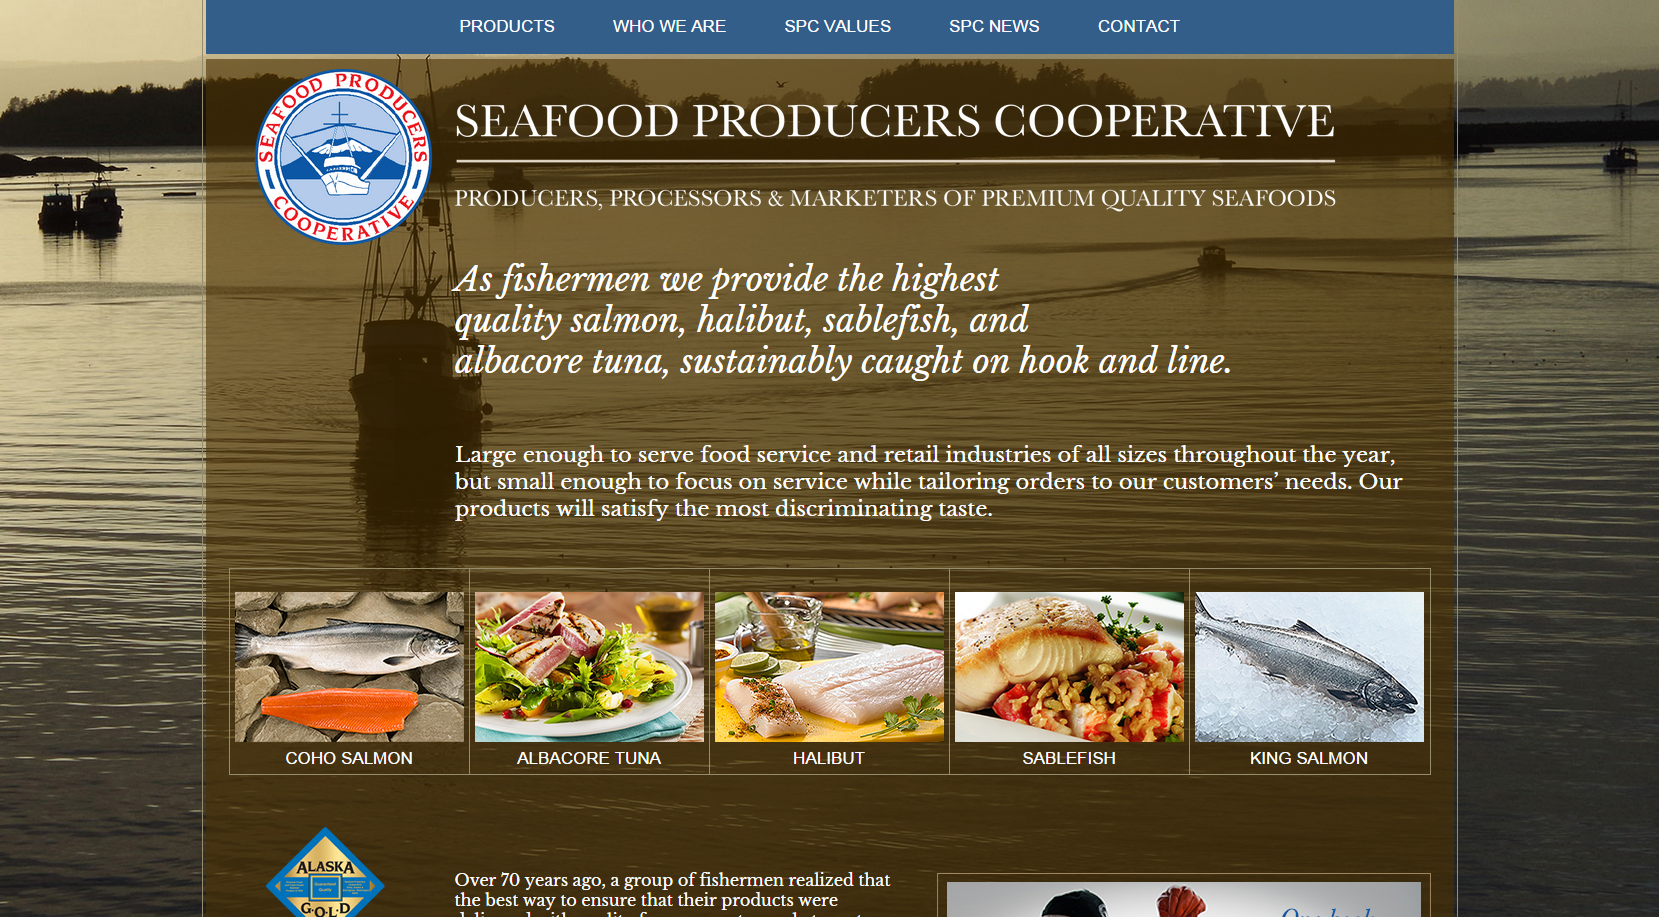 Seafood Producers Cooperative